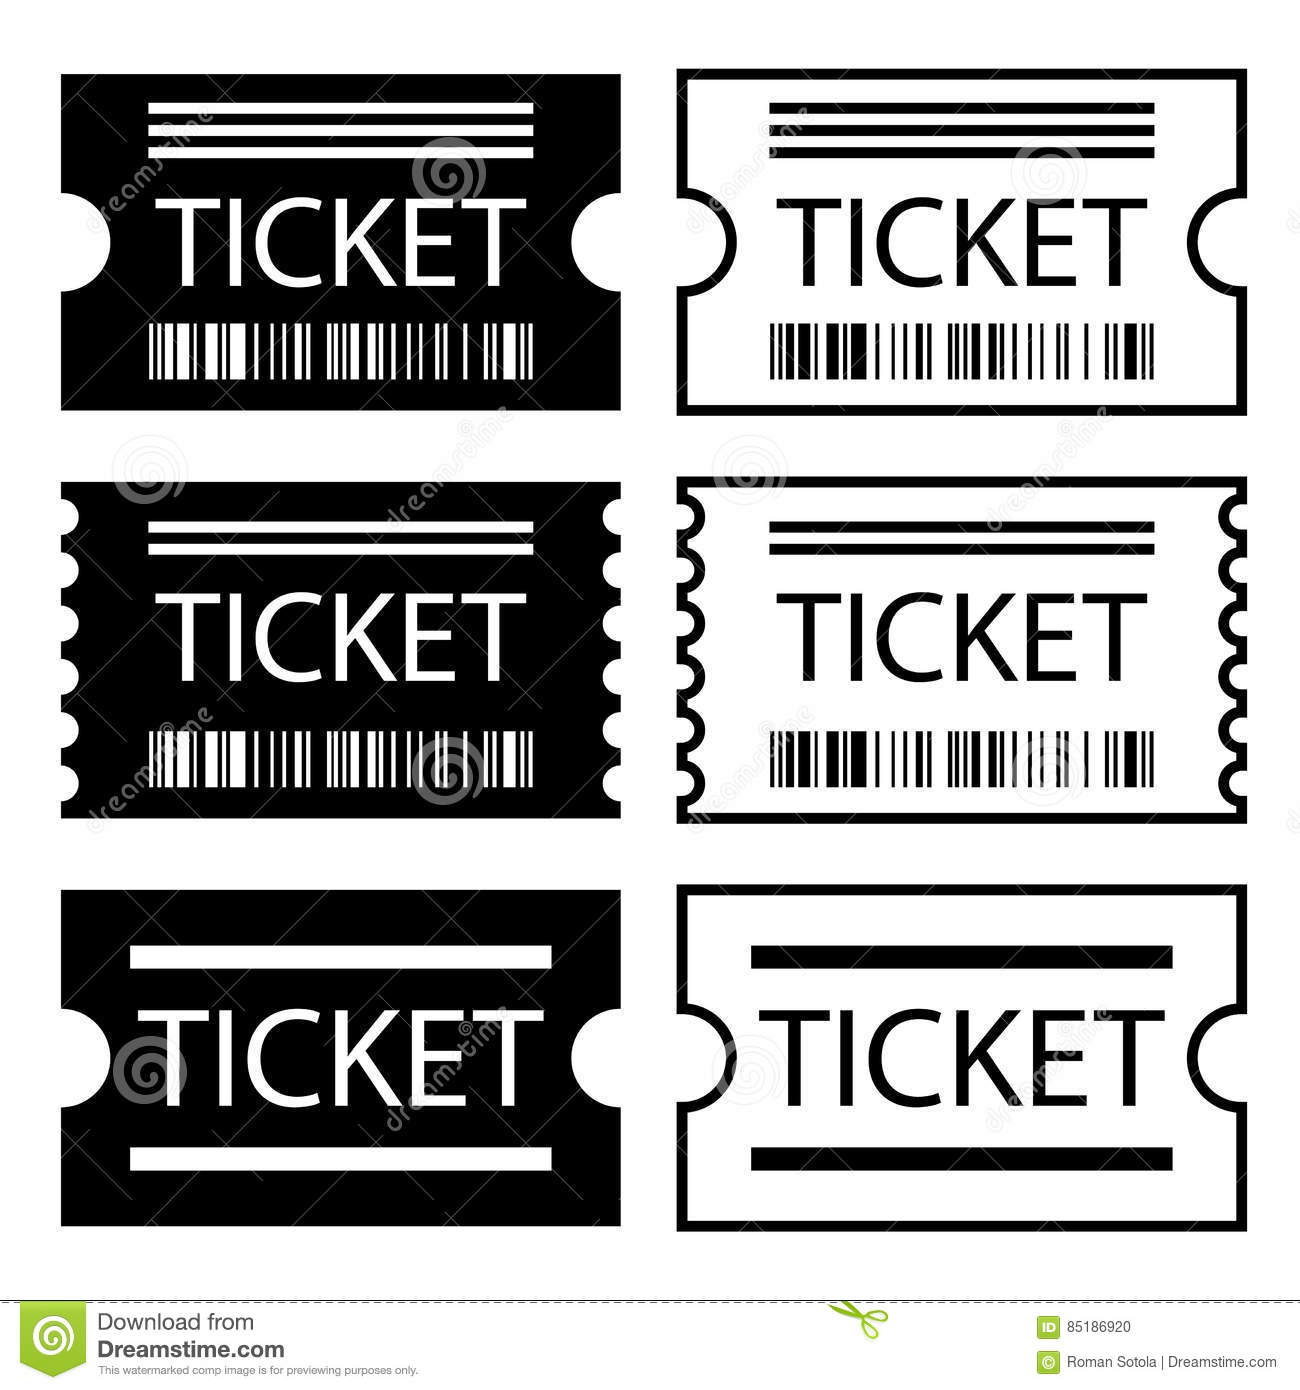 Paper Ticket Symbol Black White Stock Vector - Illustration of ...